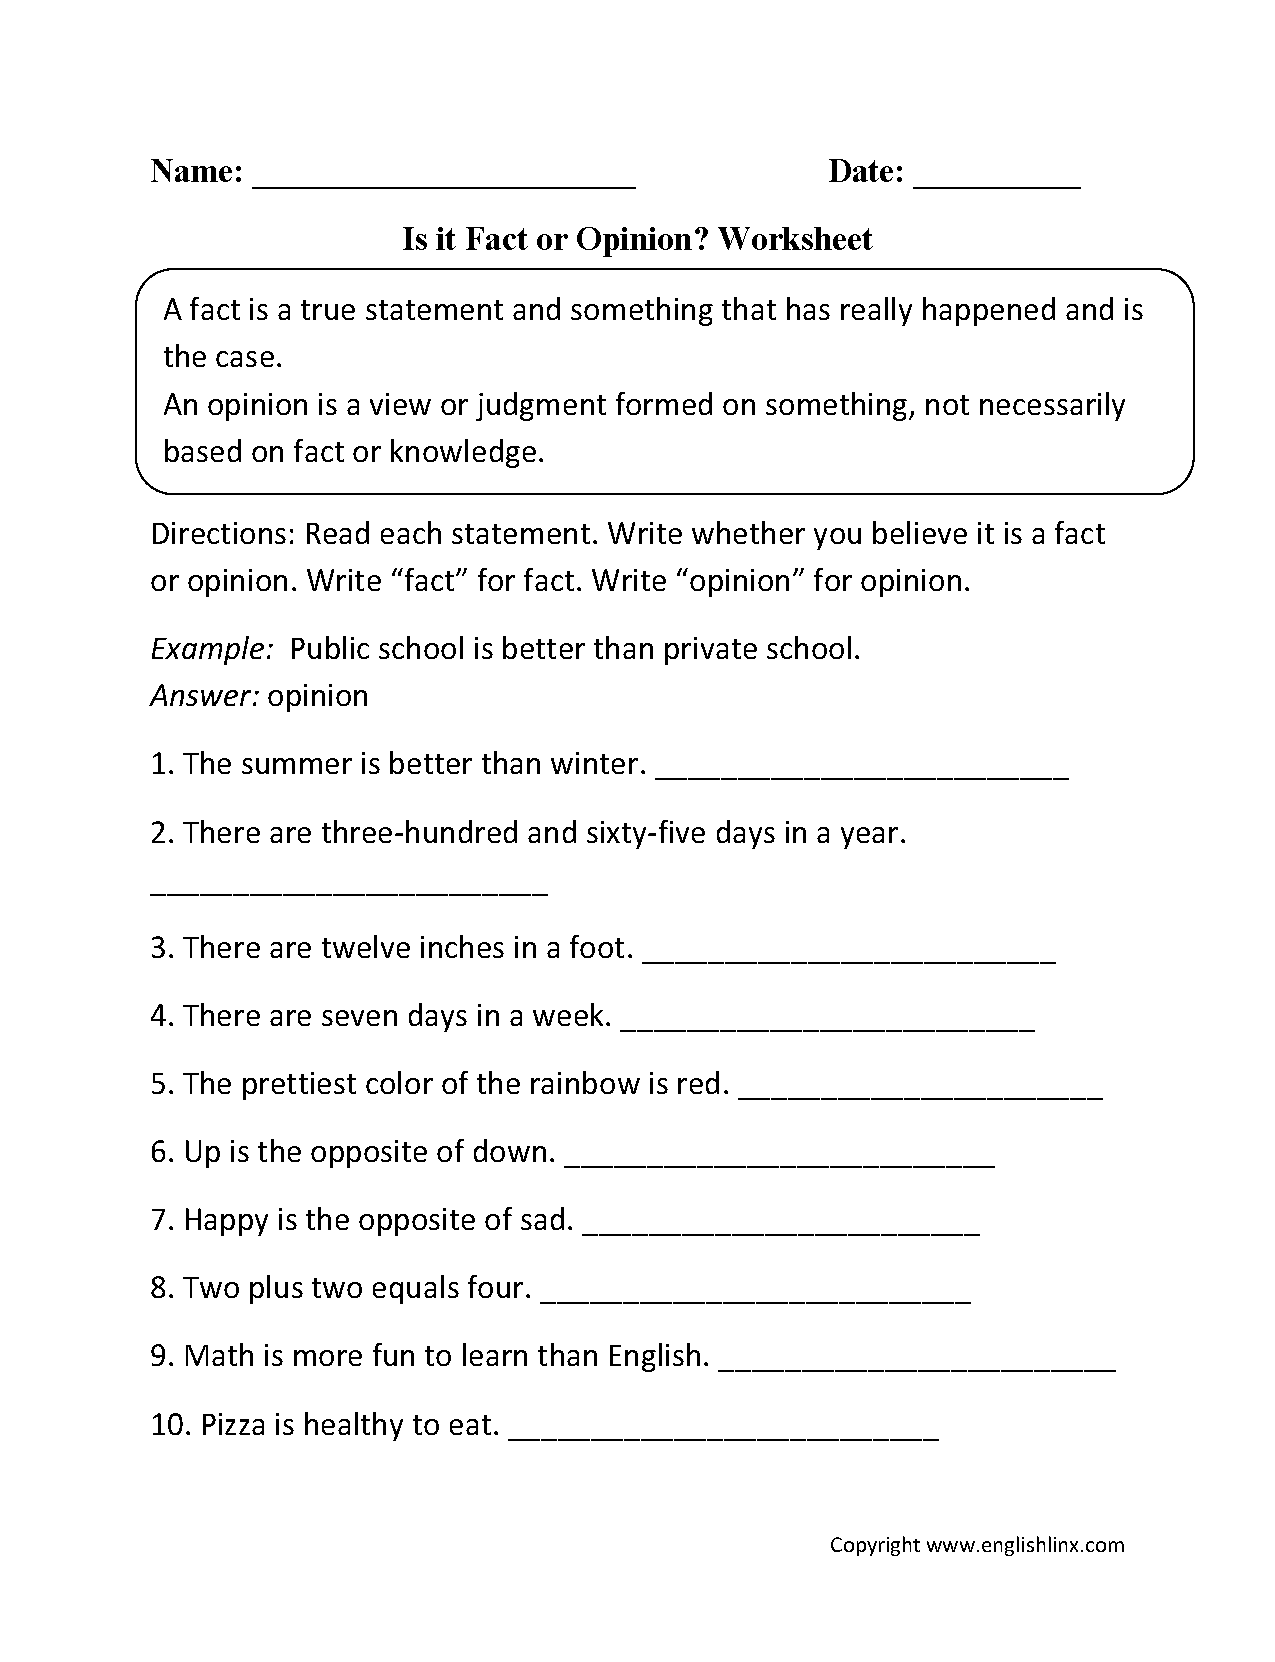 Is It Fact Or Opinion Worksheet